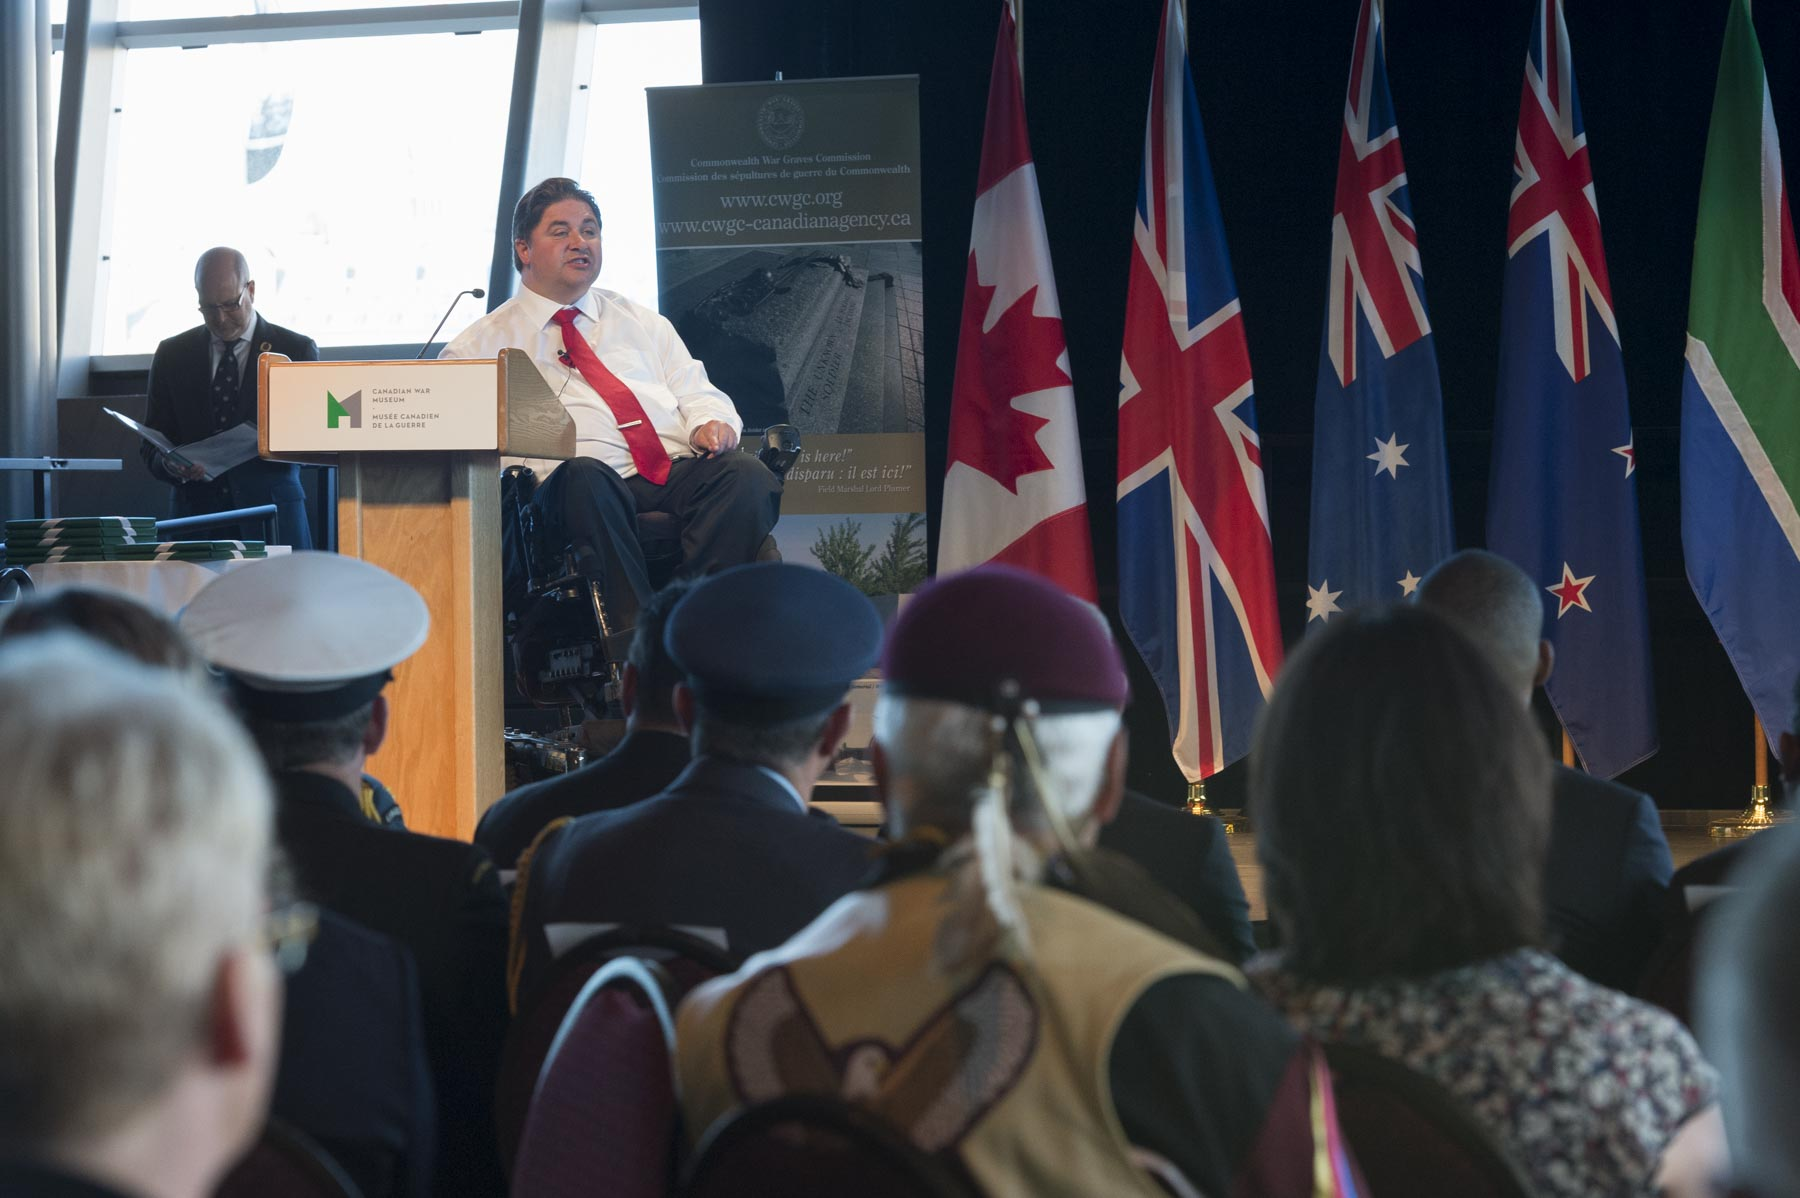 The Honourable Kent Hehr, Minister of Veterans Affairs and Associate Minister of National Defence, also delivered remarks.